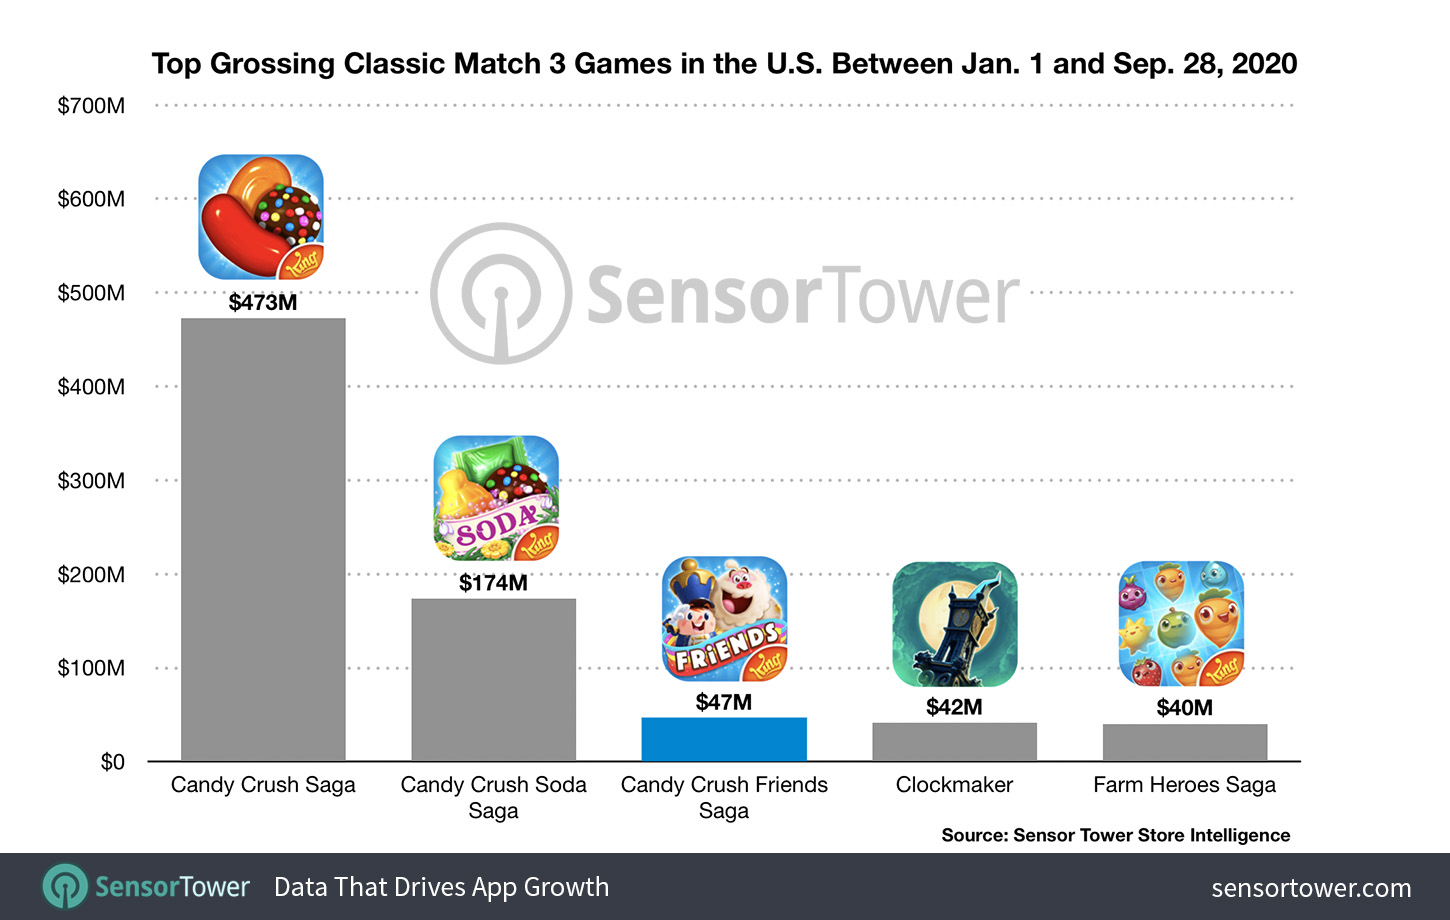 Top Grossing Classic Match 3 Games in the U.S. Between Jan. 1 to Sep. 28, 2020